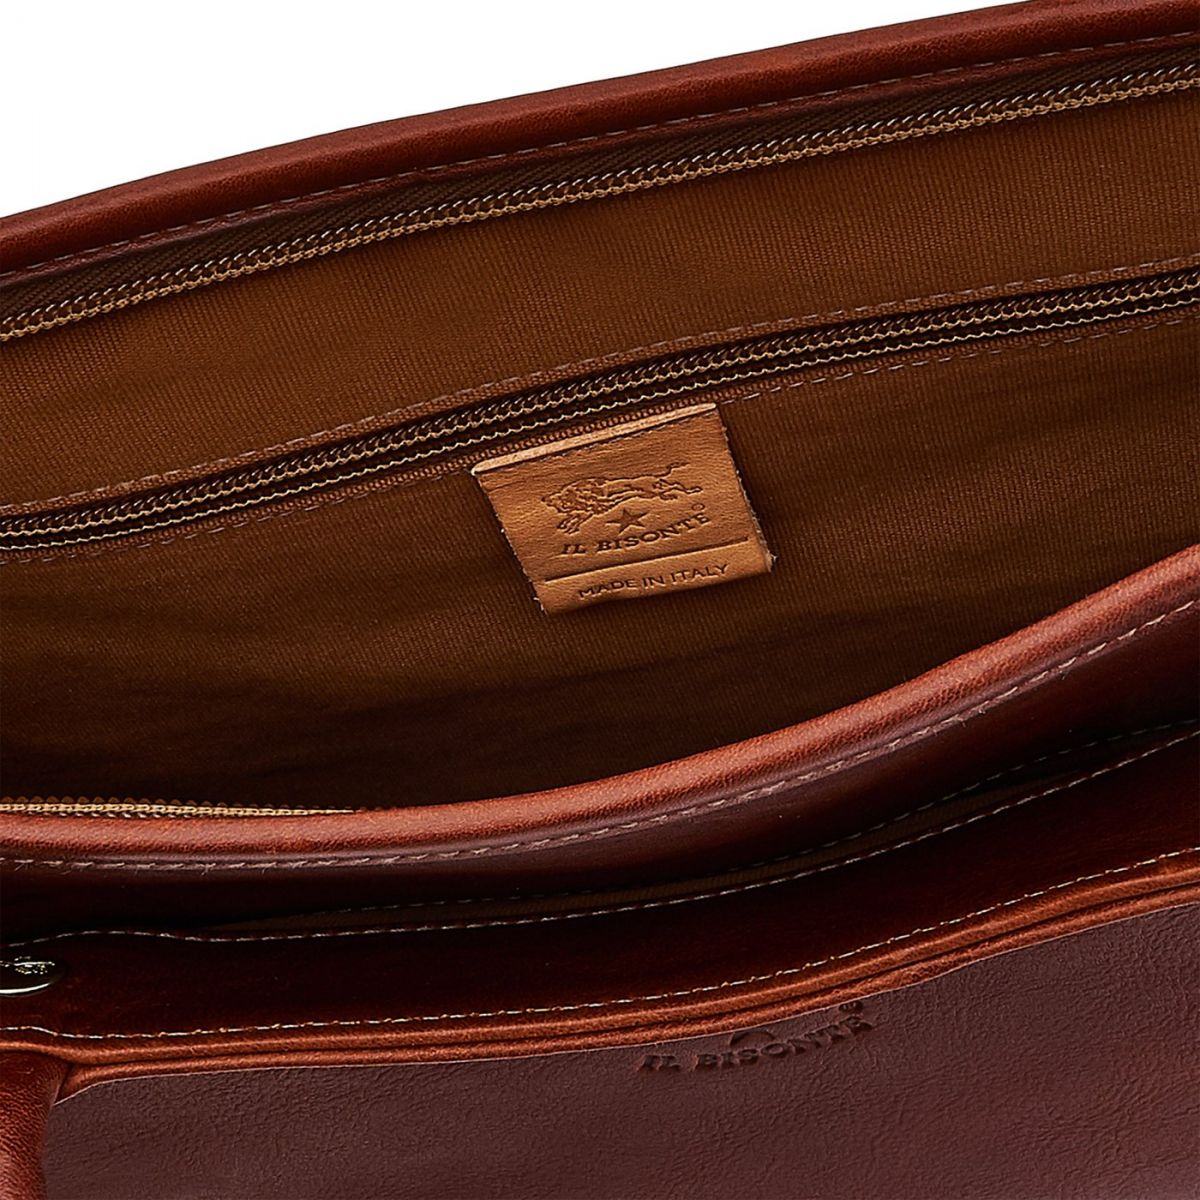 Briefcase in Vintage Cowhide Leather BBC017 color Dark Brown Seppia | Details